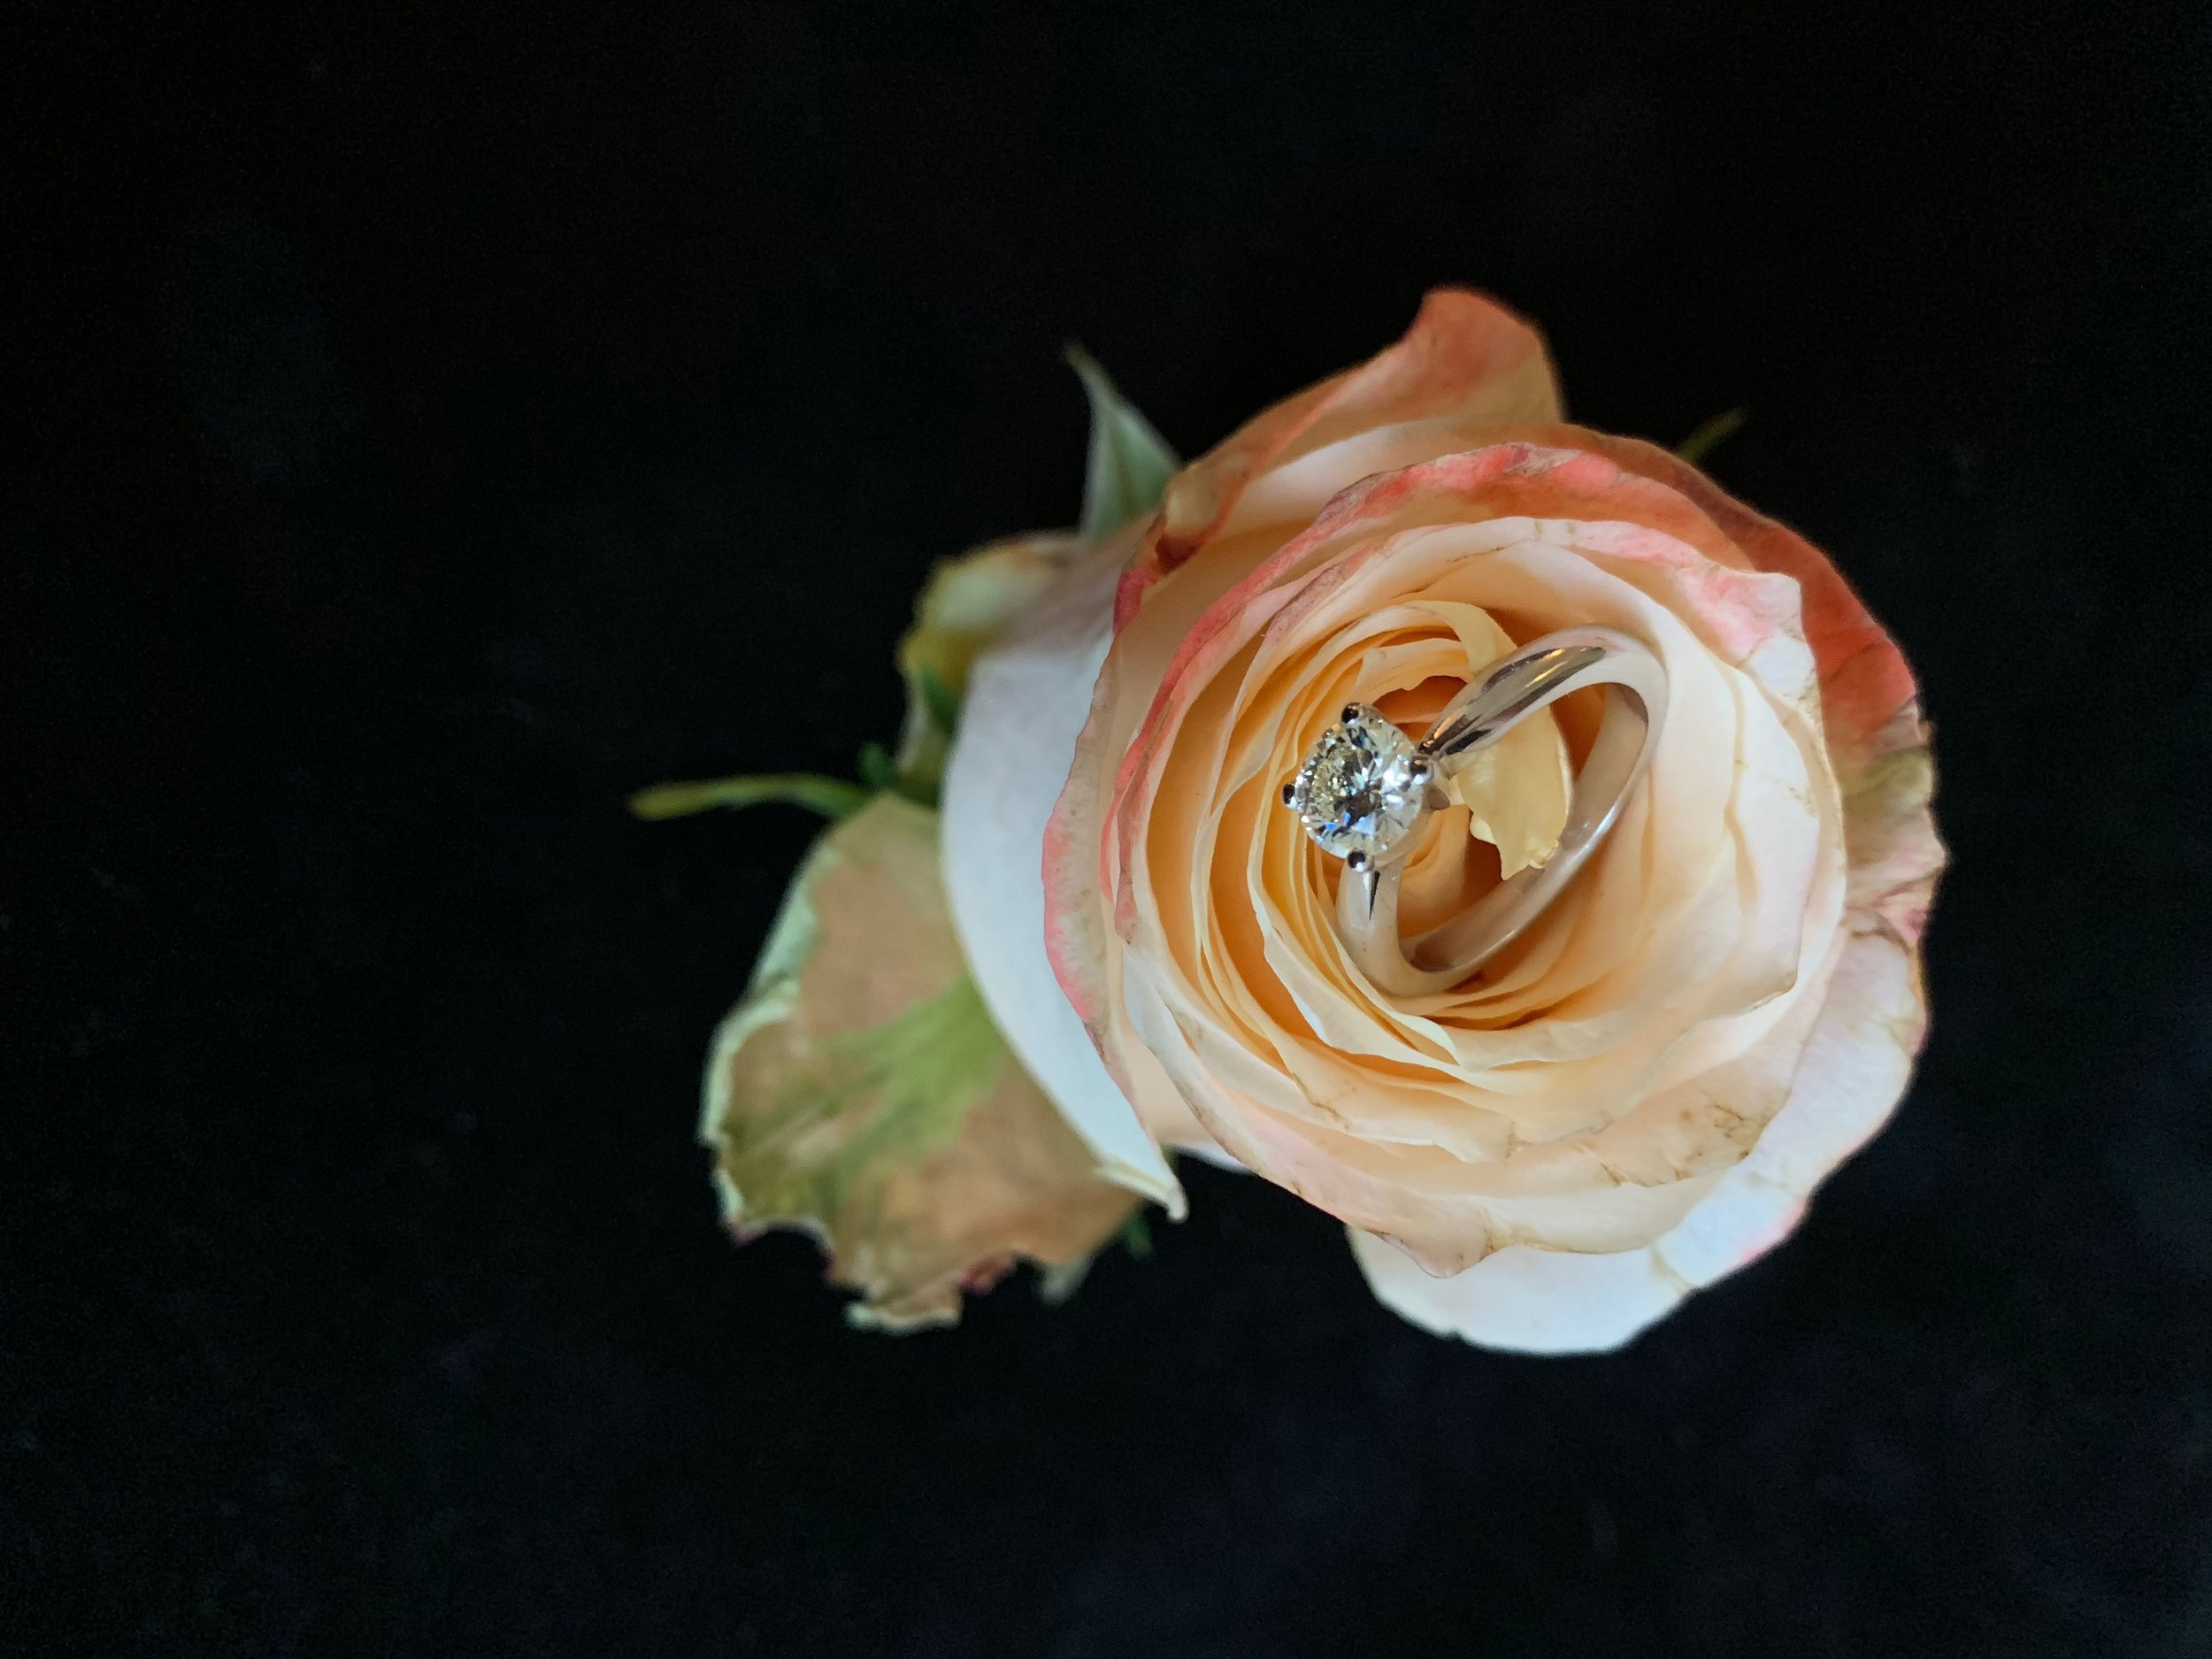 Solitaire ring with brilliant cut diamond